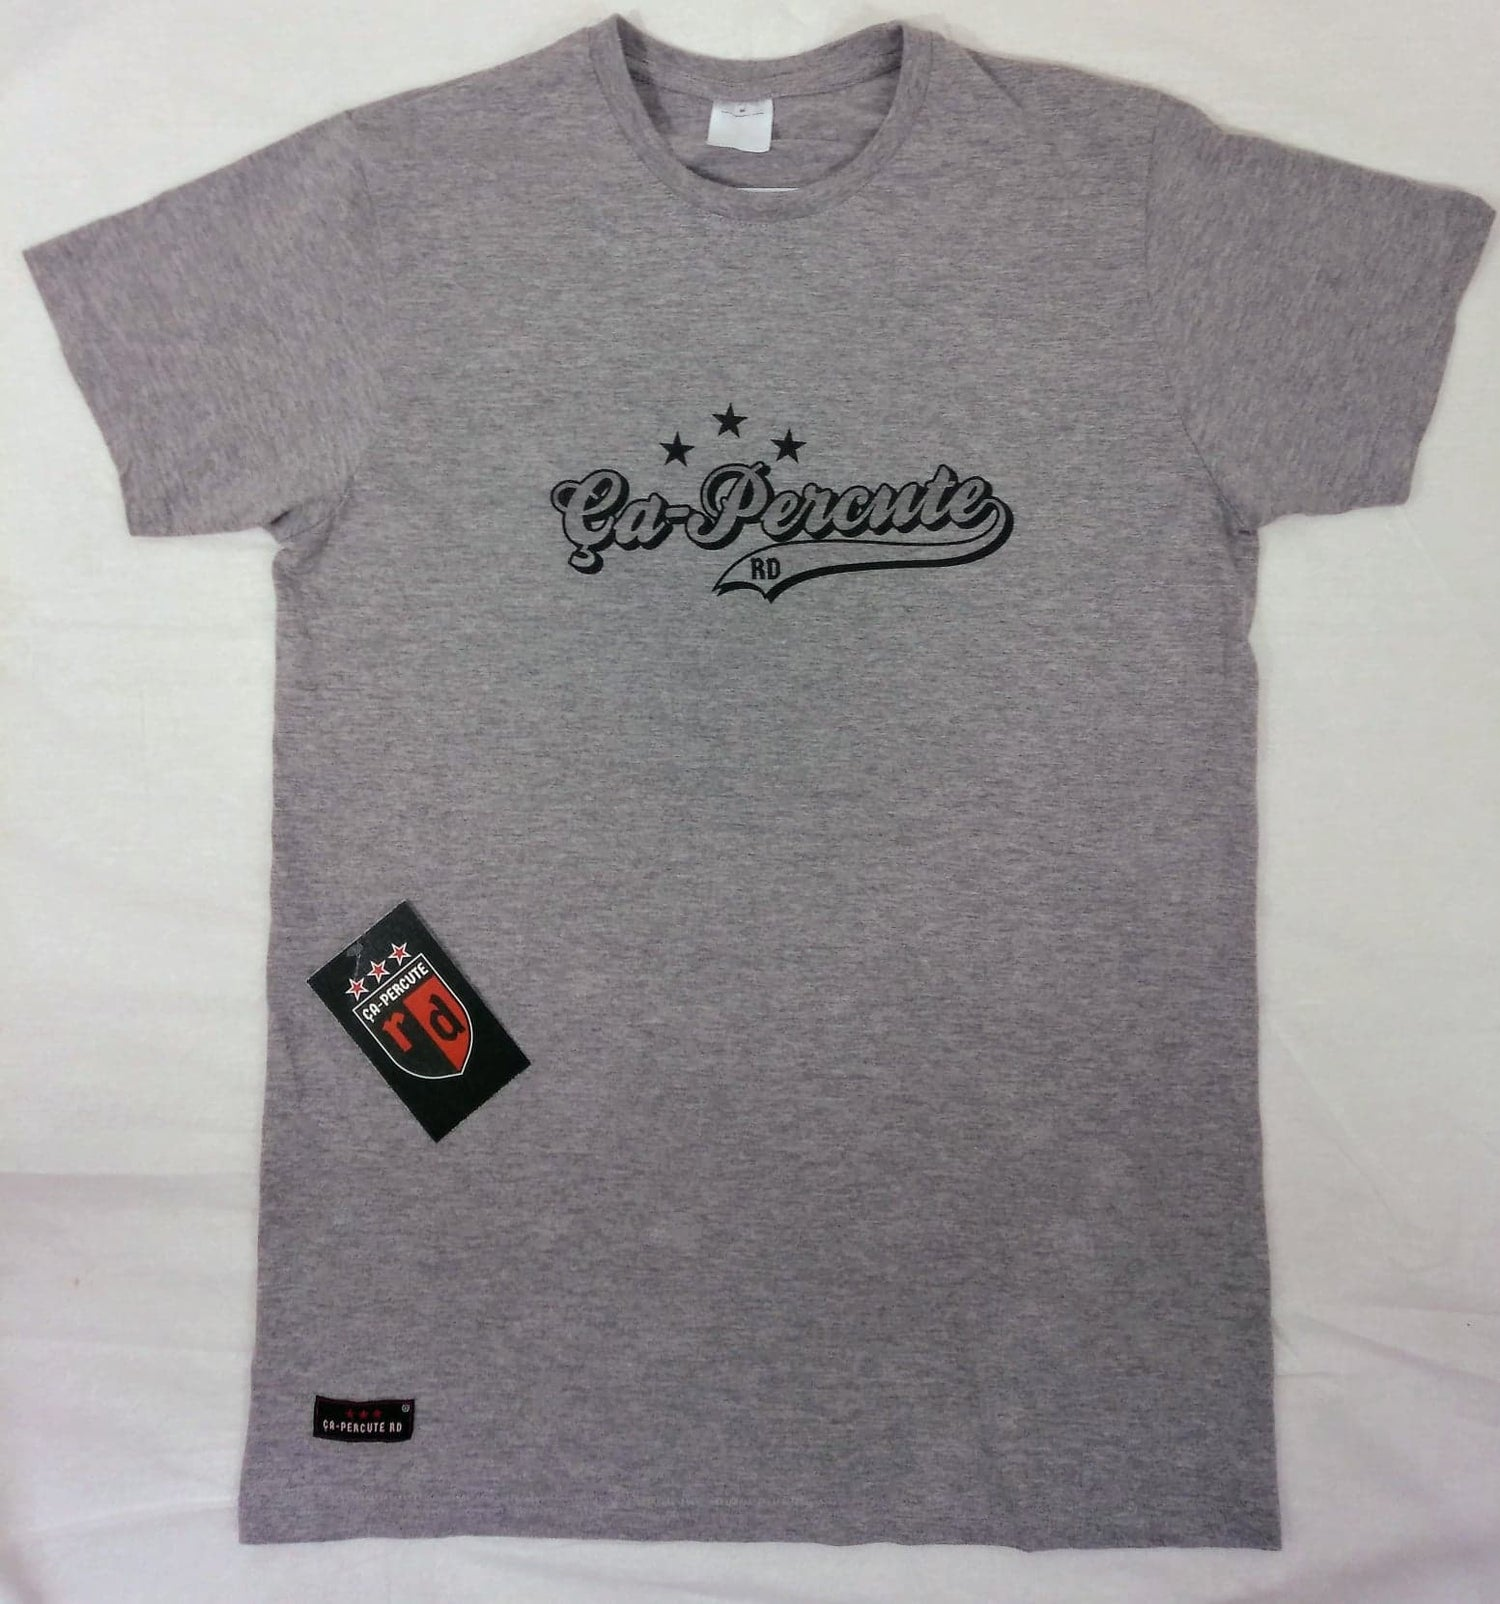 Image of Tee-shirt gris homme Ça-Percute Rd TAG